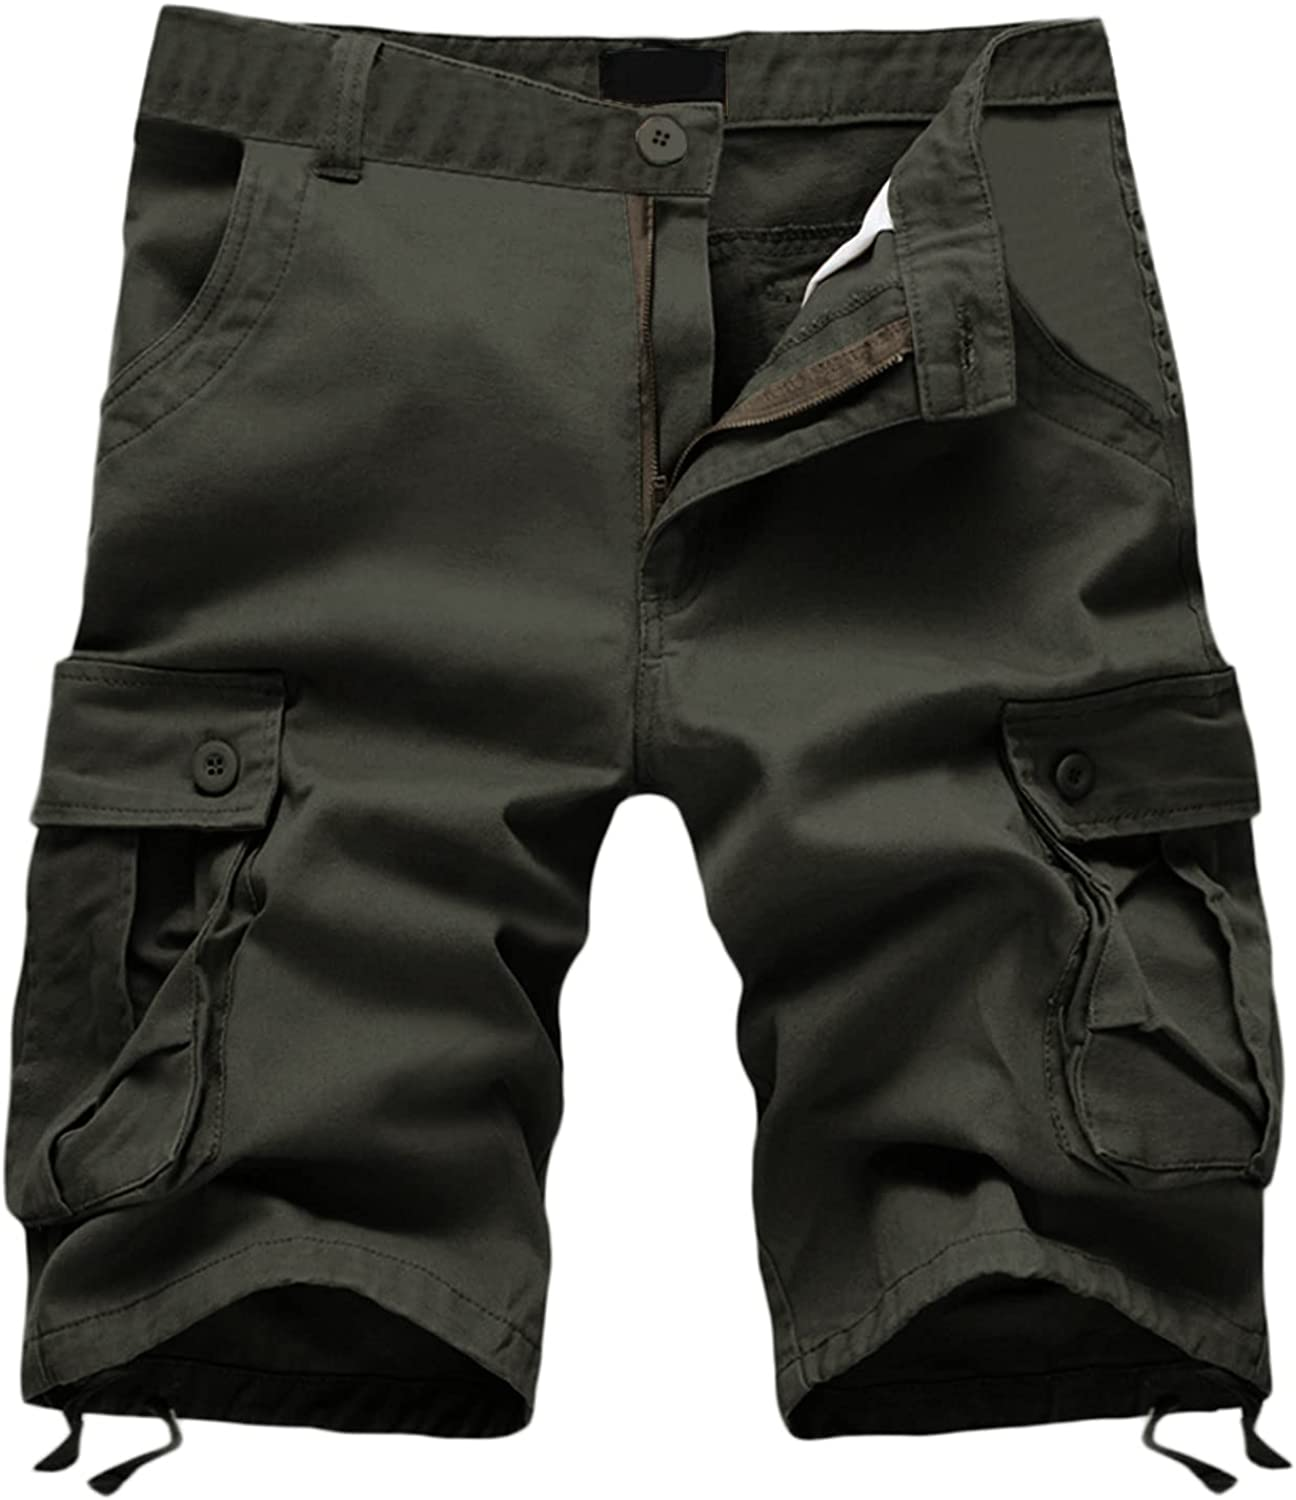 Fees free Mens Fashion Cargo Selling and selling Shorts Solid Strech Classic-fit Casual